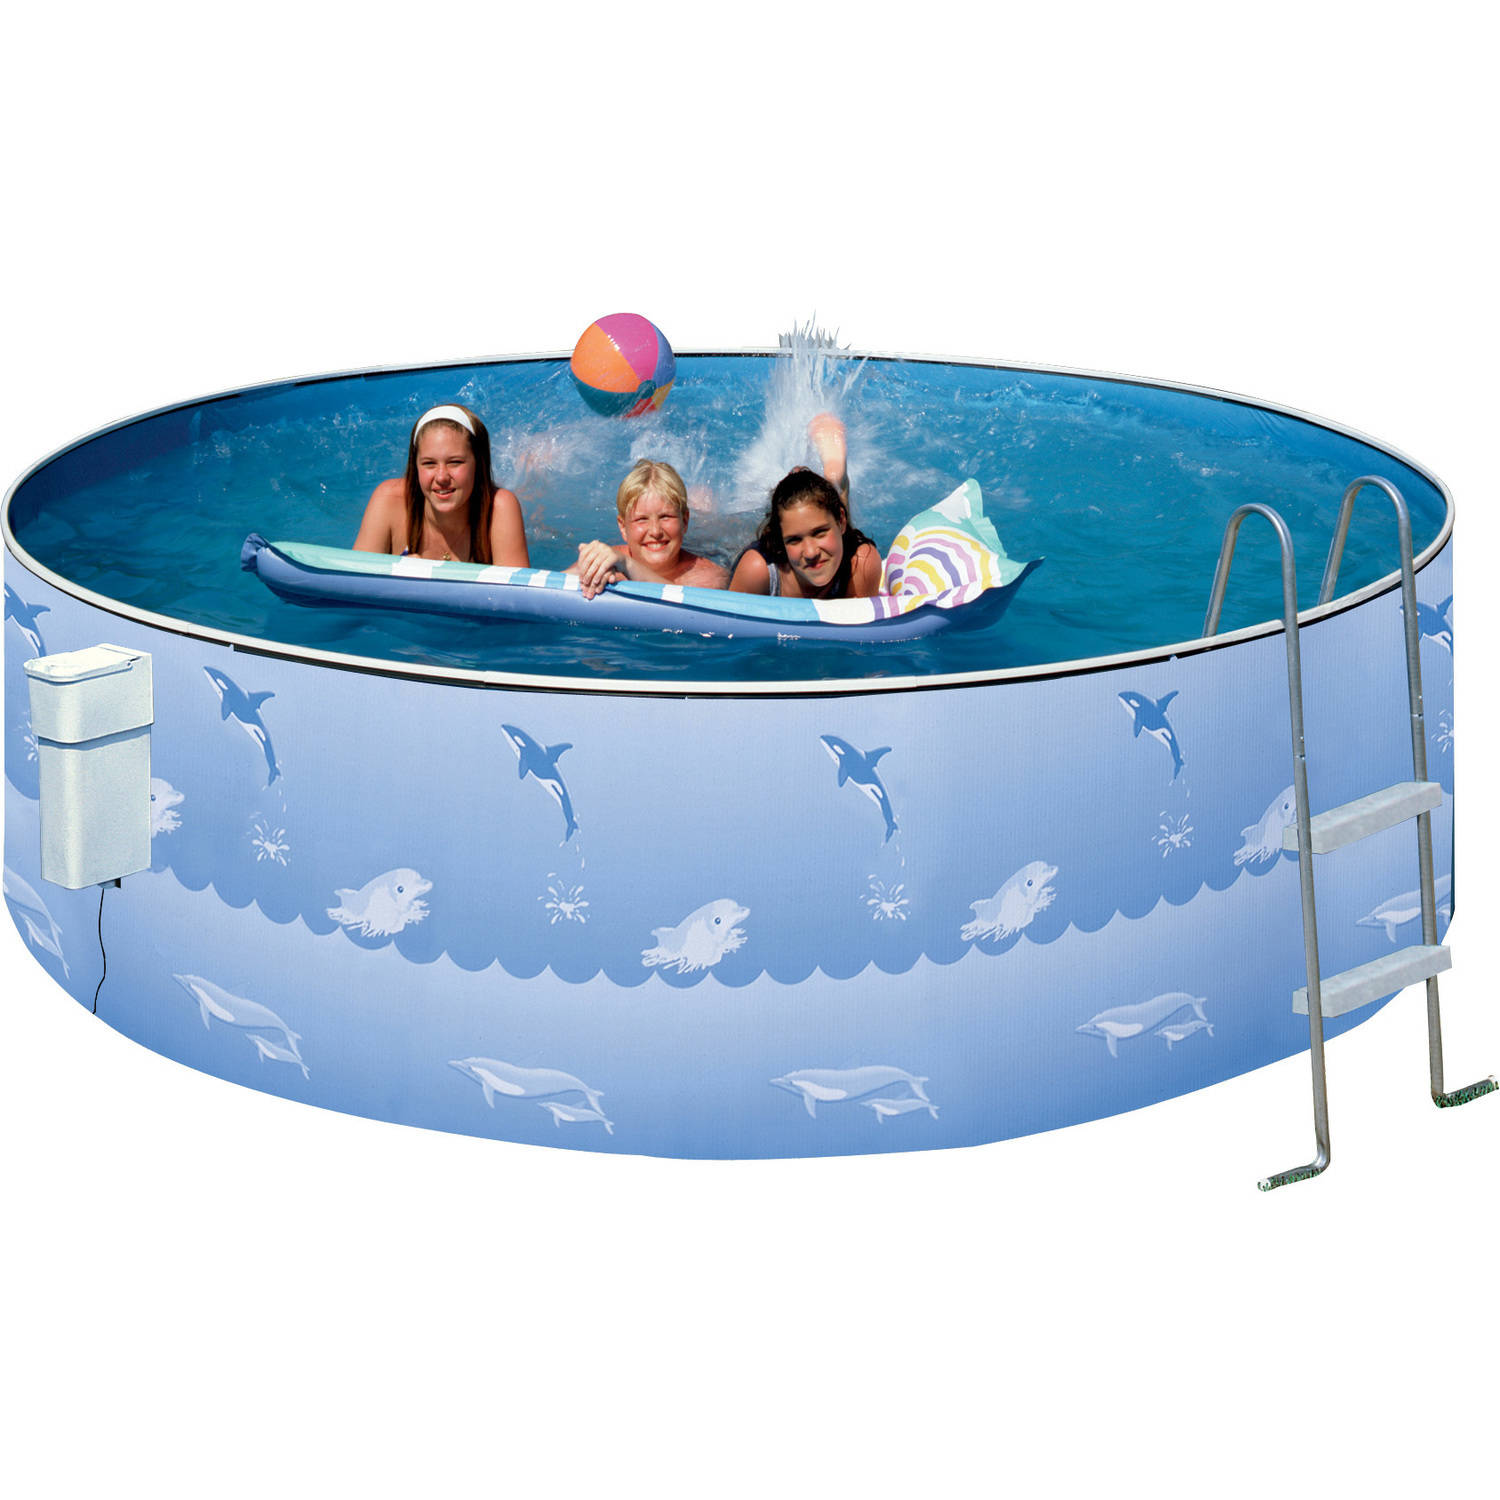 "Heritage Round 15' x 36"" Above Ground Swimming Pool by Swim 'N Play Inc."